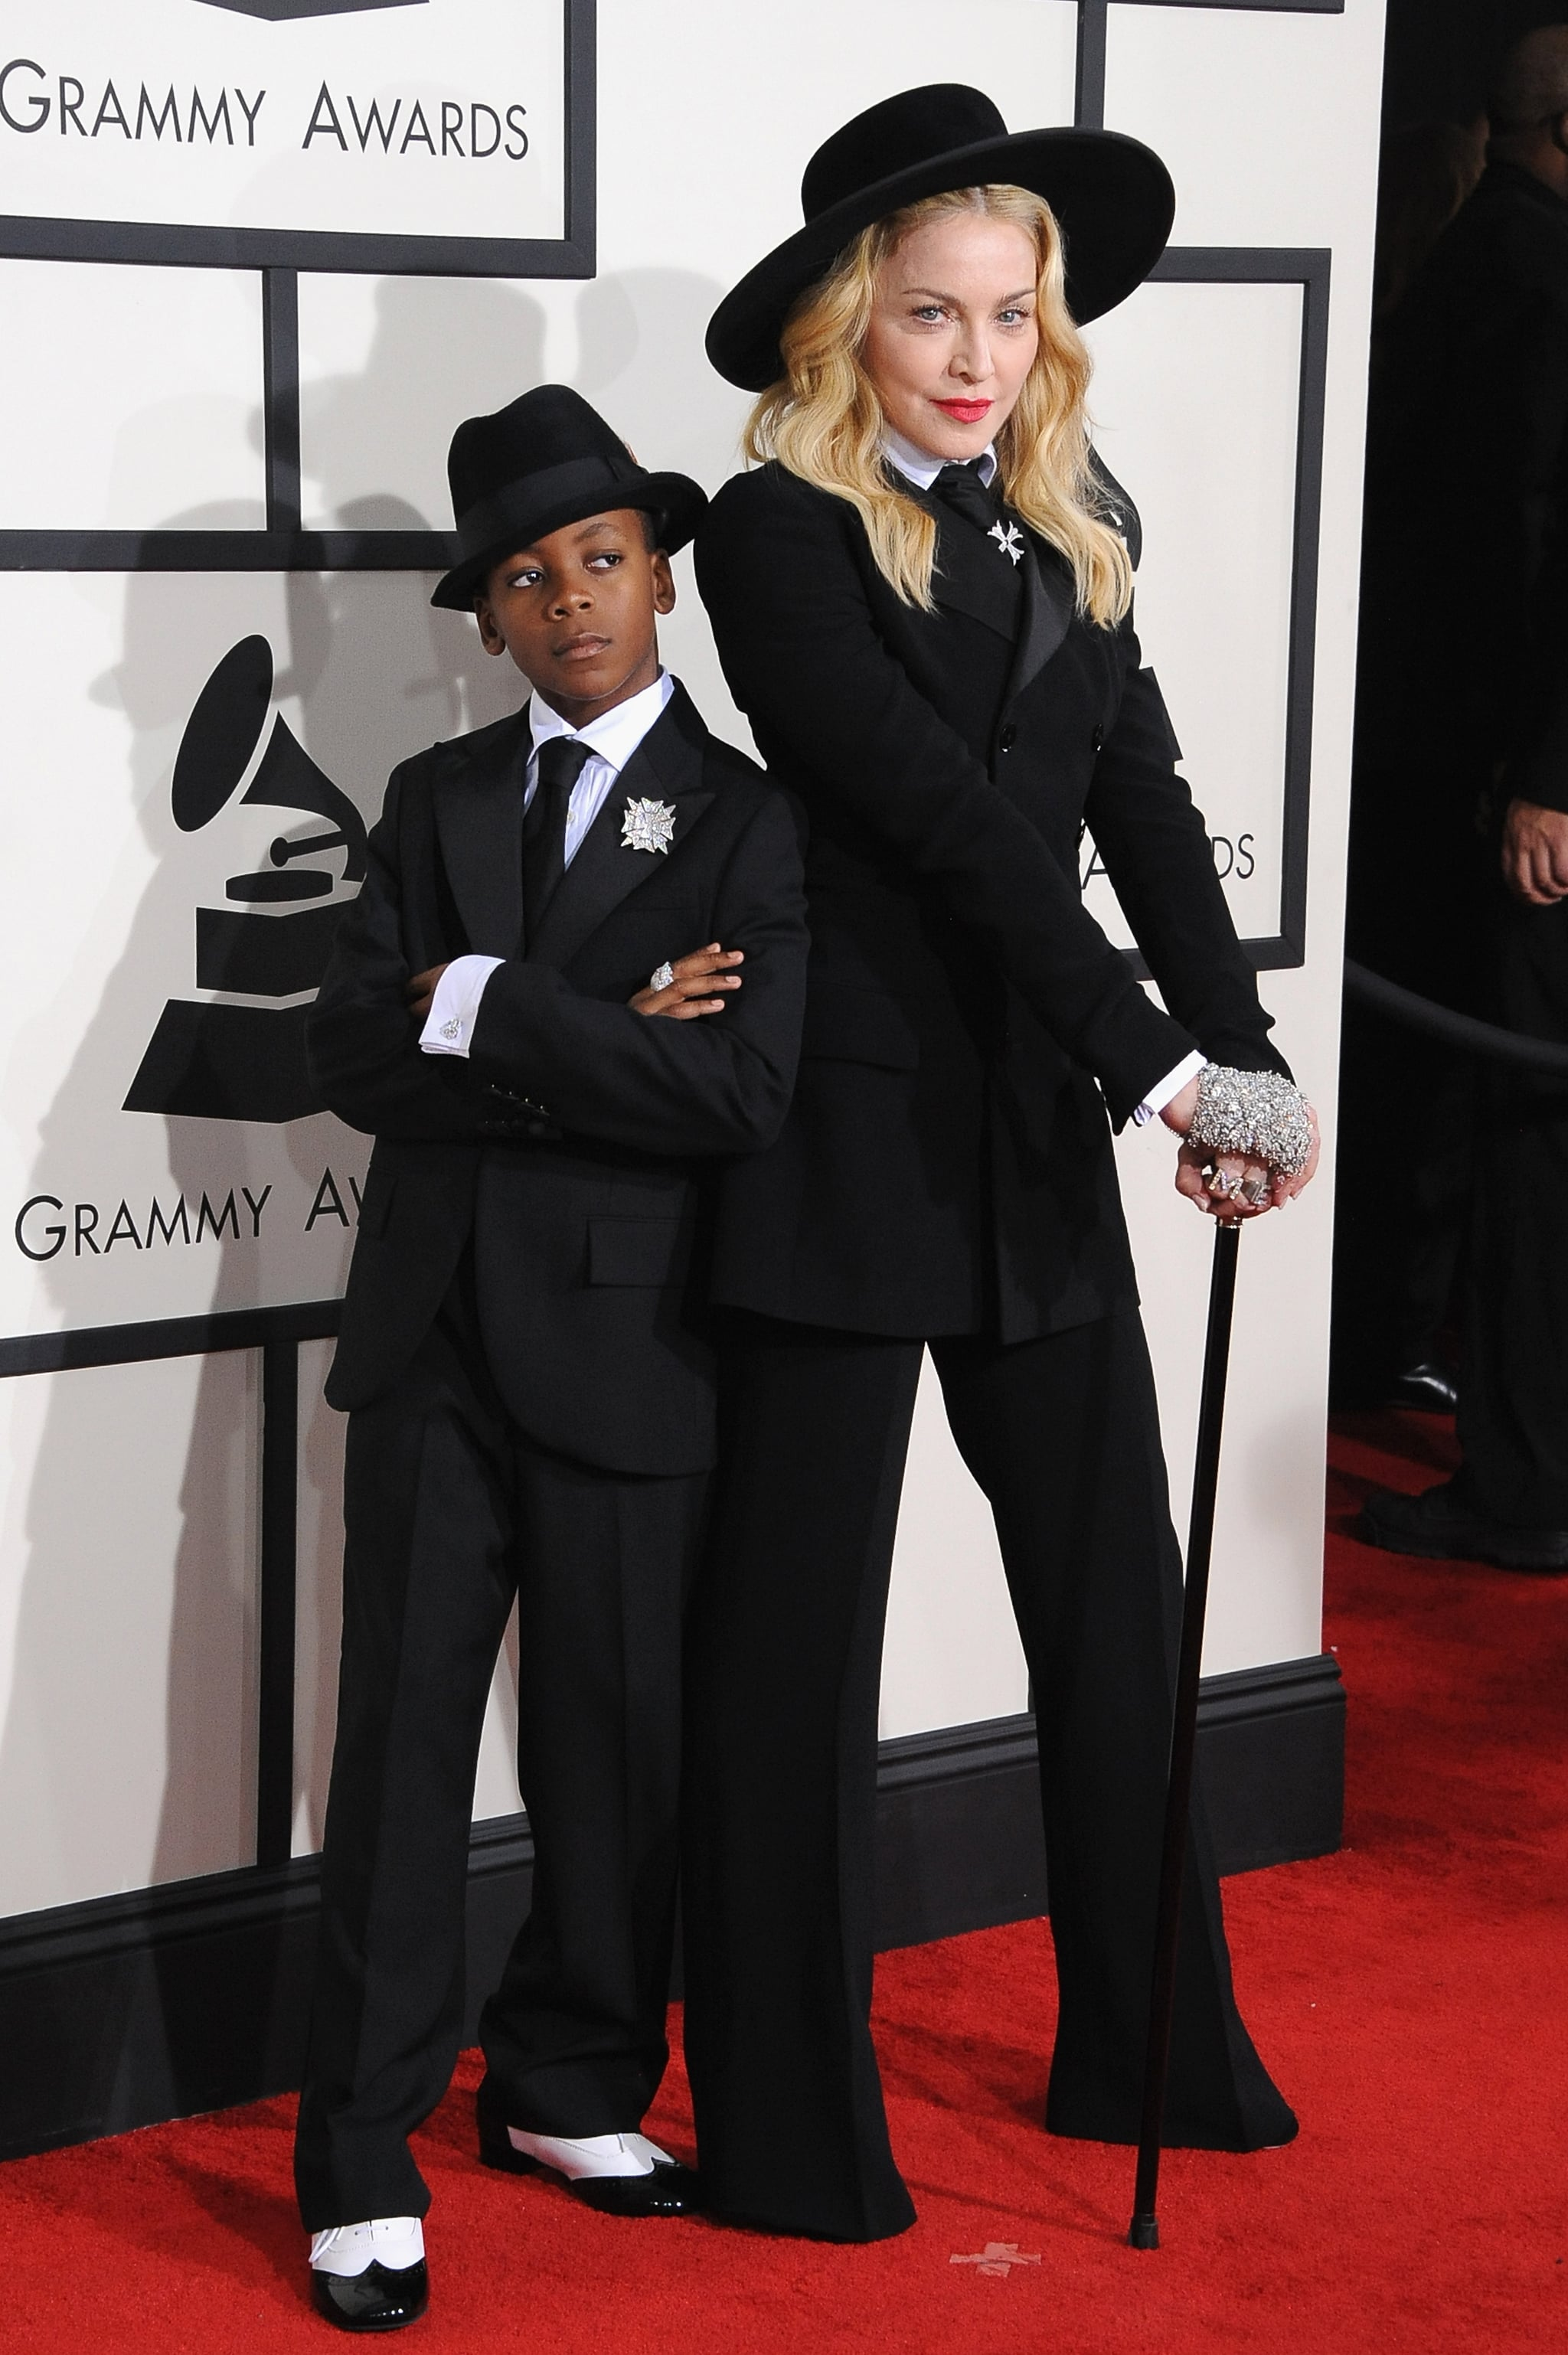 Madonna and her son, David, dressed up as twins for the Grammys.